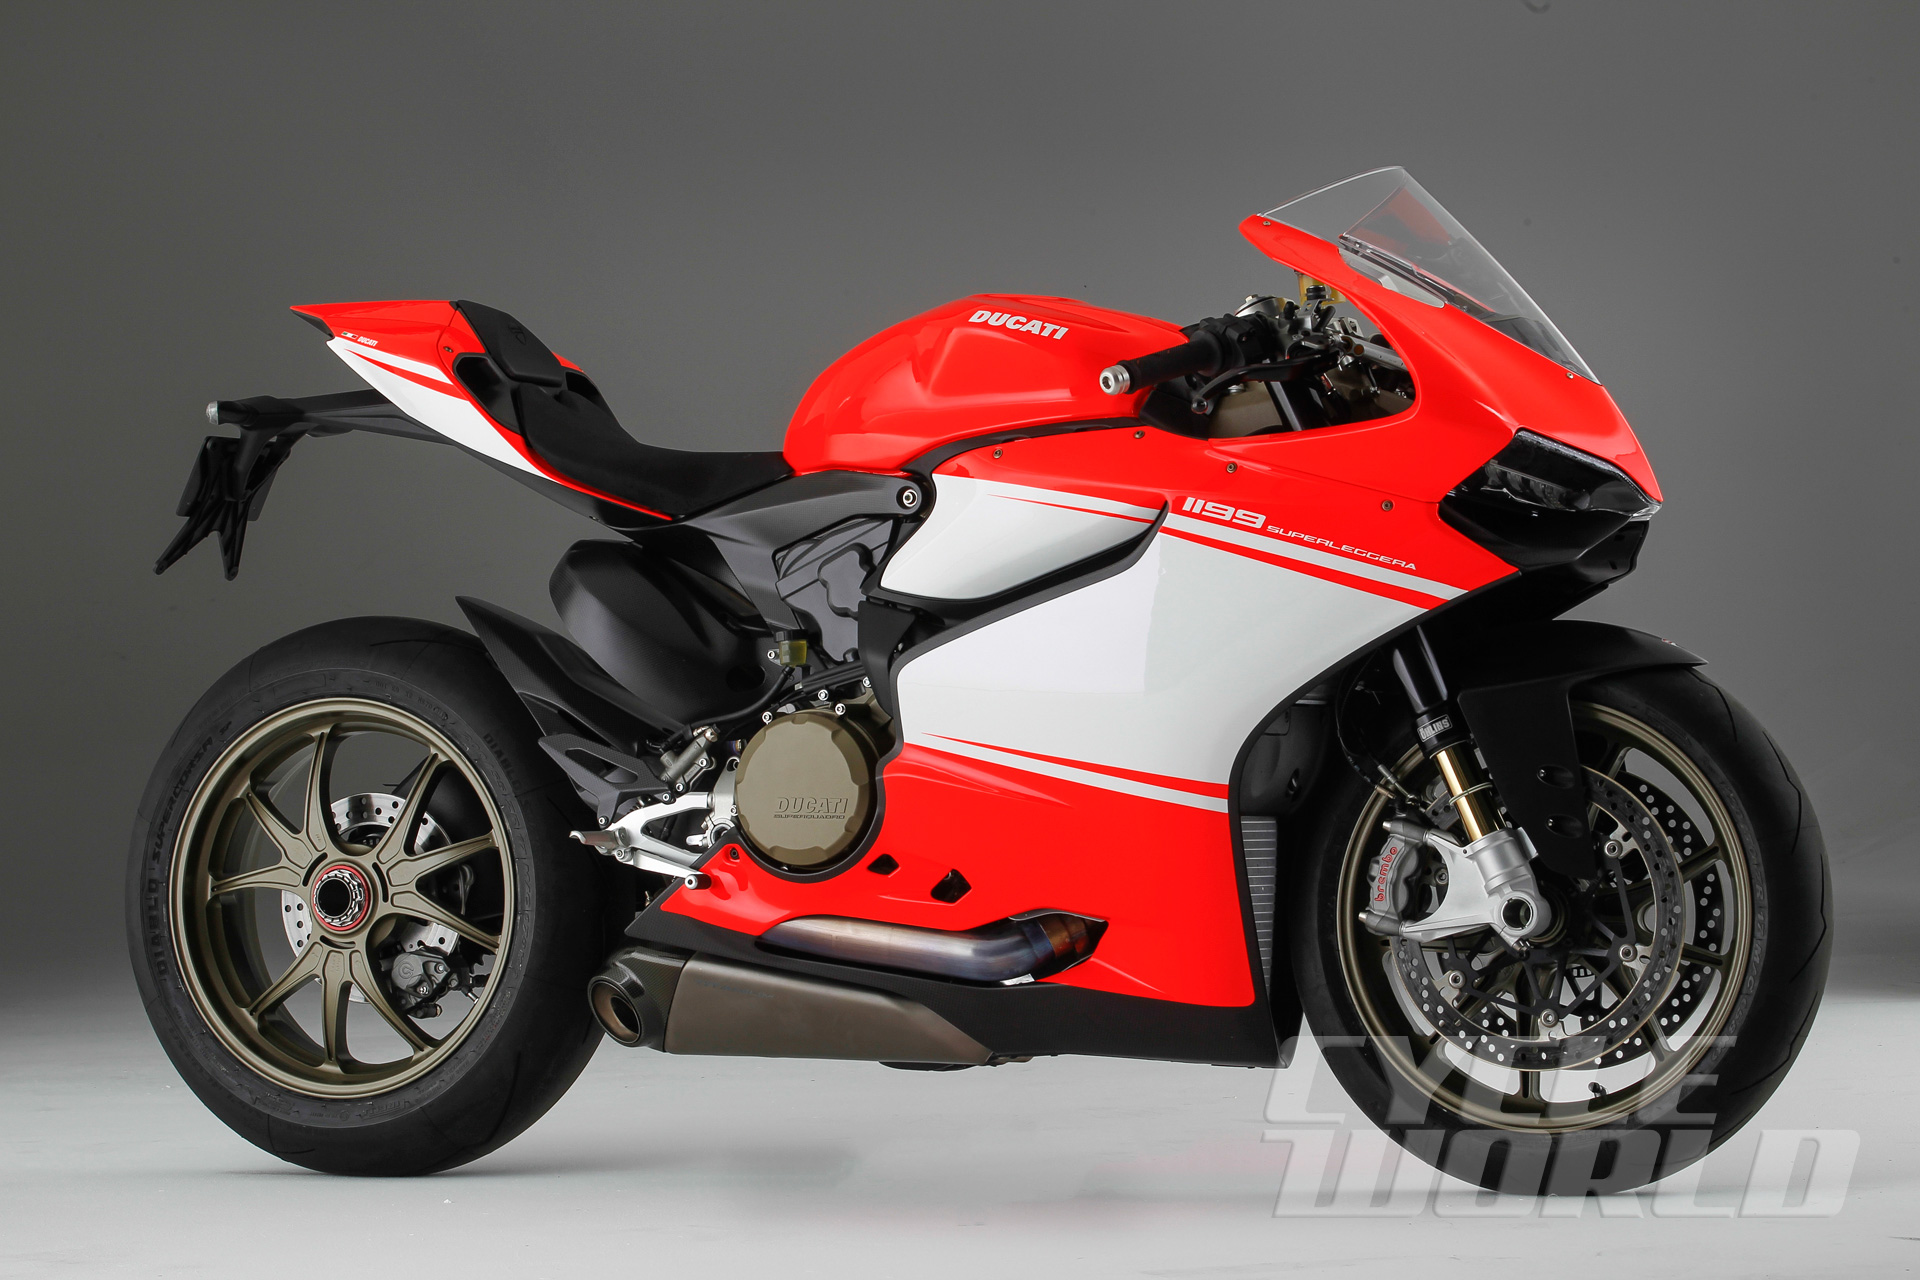 Ducati-Superleggera-full-faired.jpg